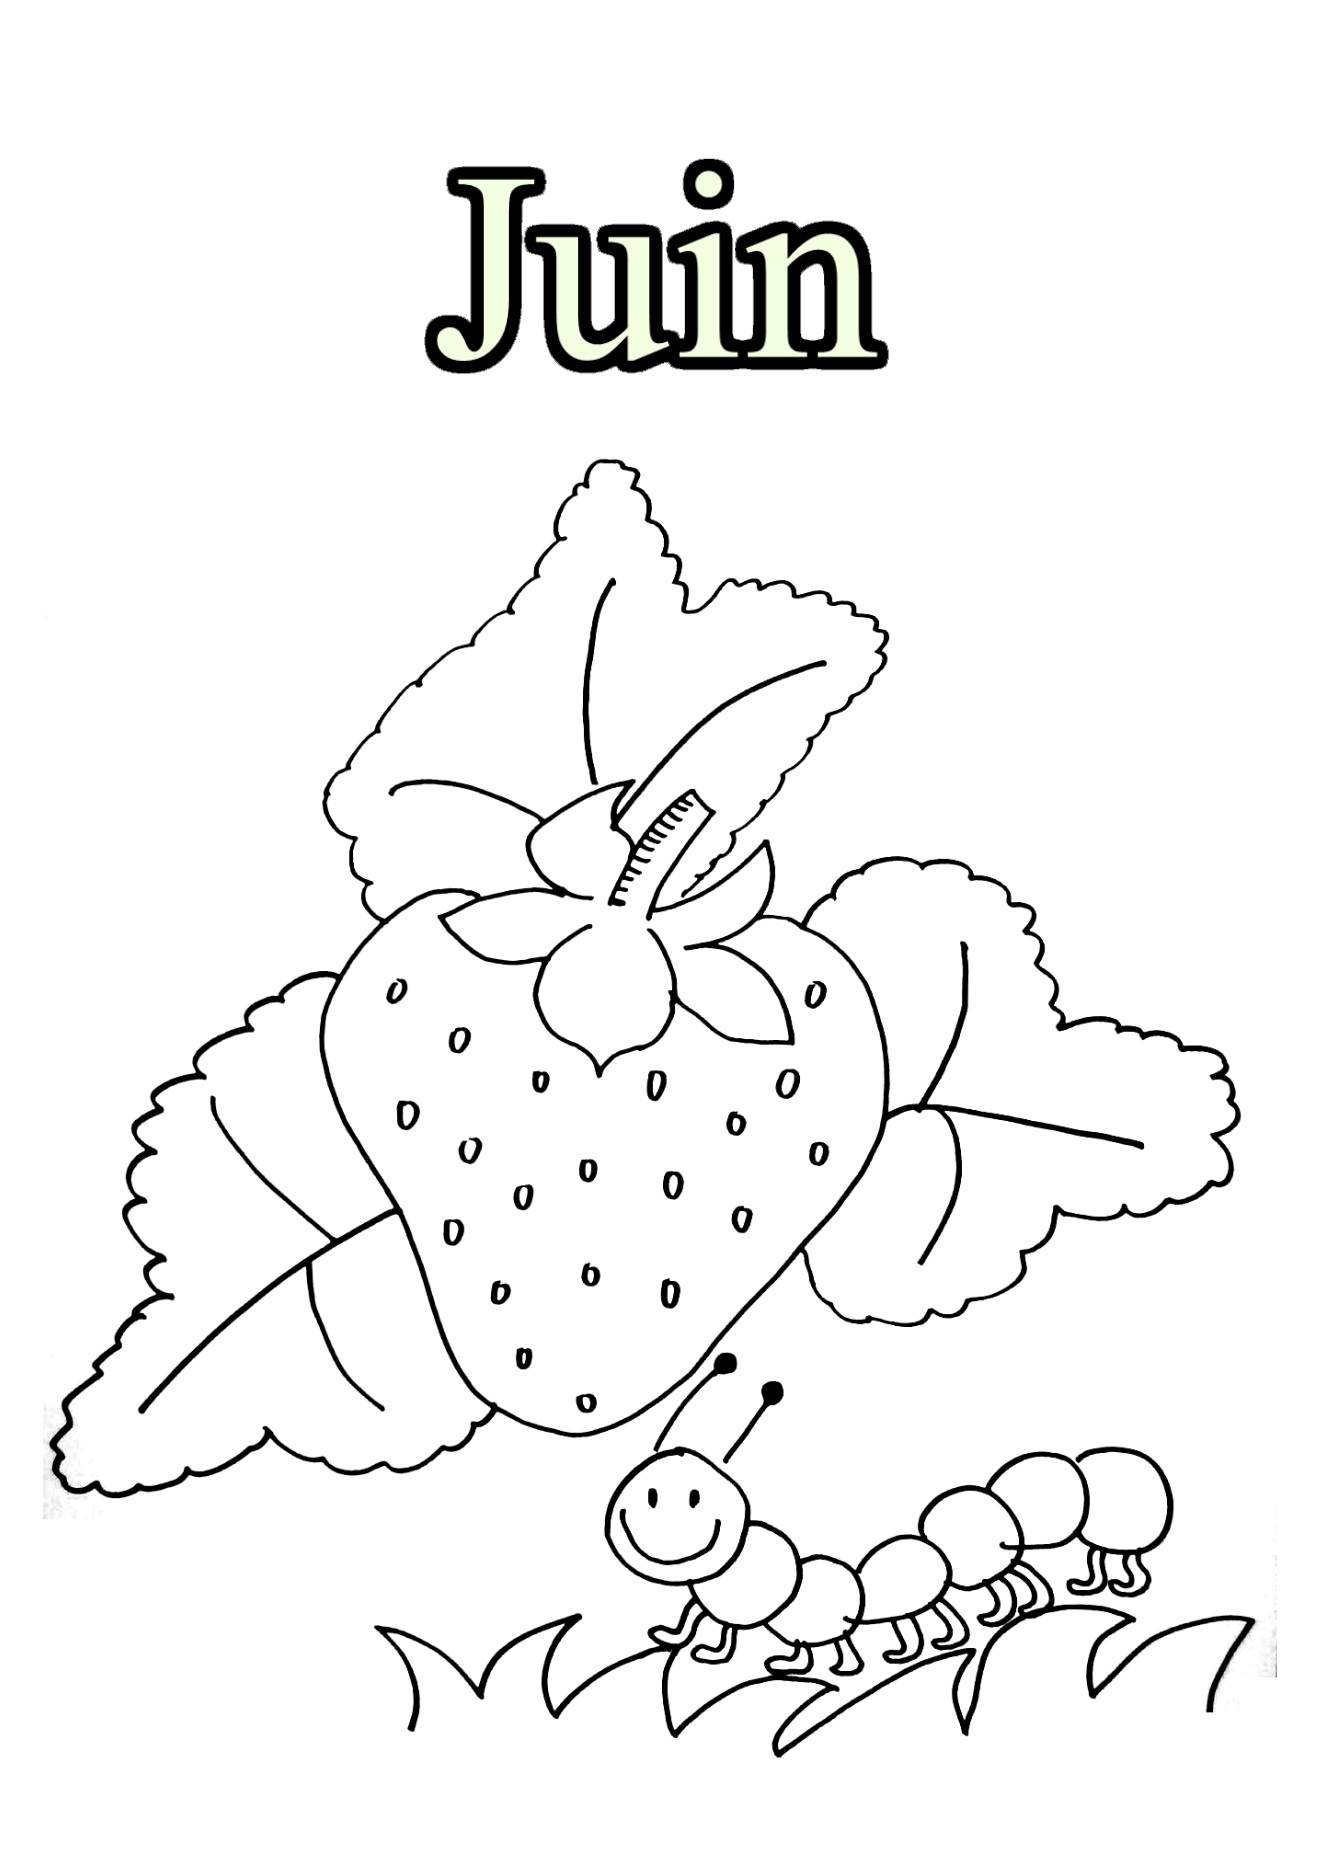 Month free to color for children - Month Kids Coloring Pages